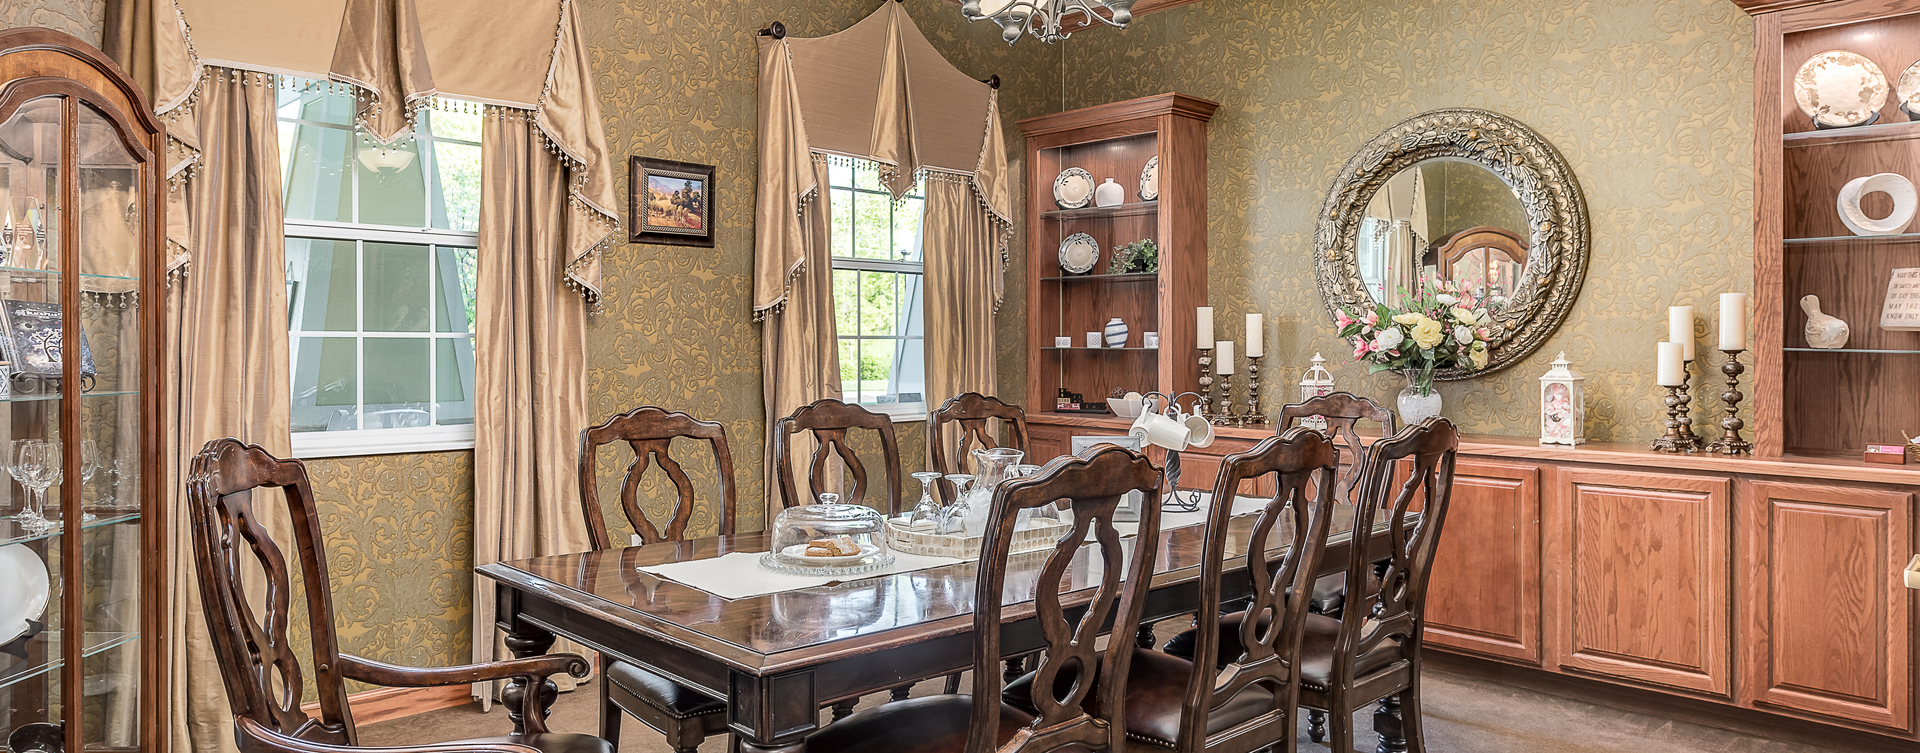 Food is best when shared with family and friends in the private dining room at Bickford of Midland